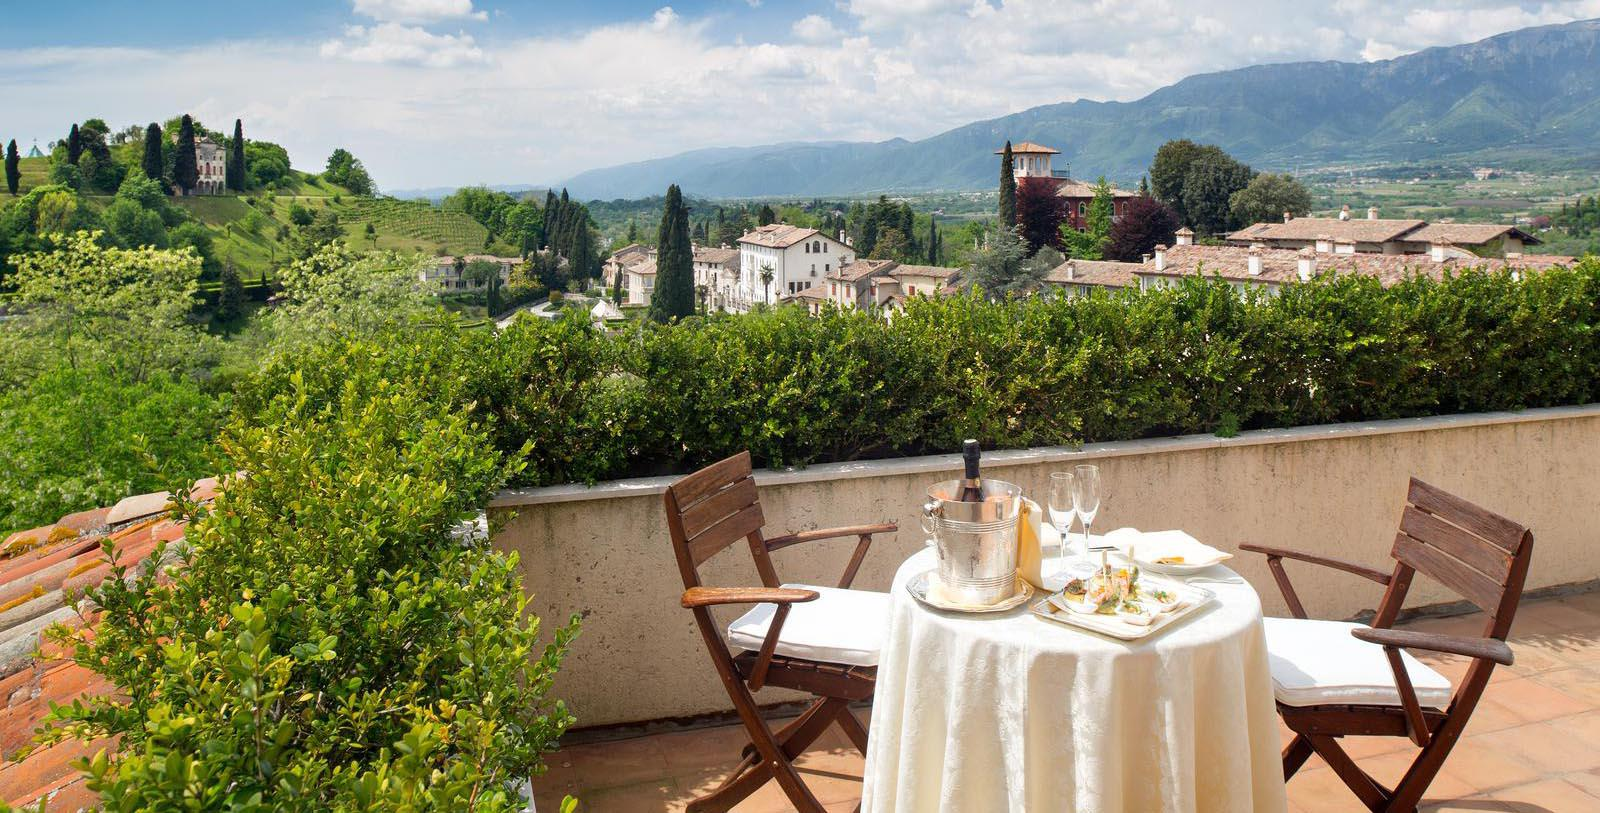 Image of Meal on Balcony Hotel Villa Cipriani, 1889, Member of Historic Hotels Worldwide, in Asolo, Italy, Hot Deals